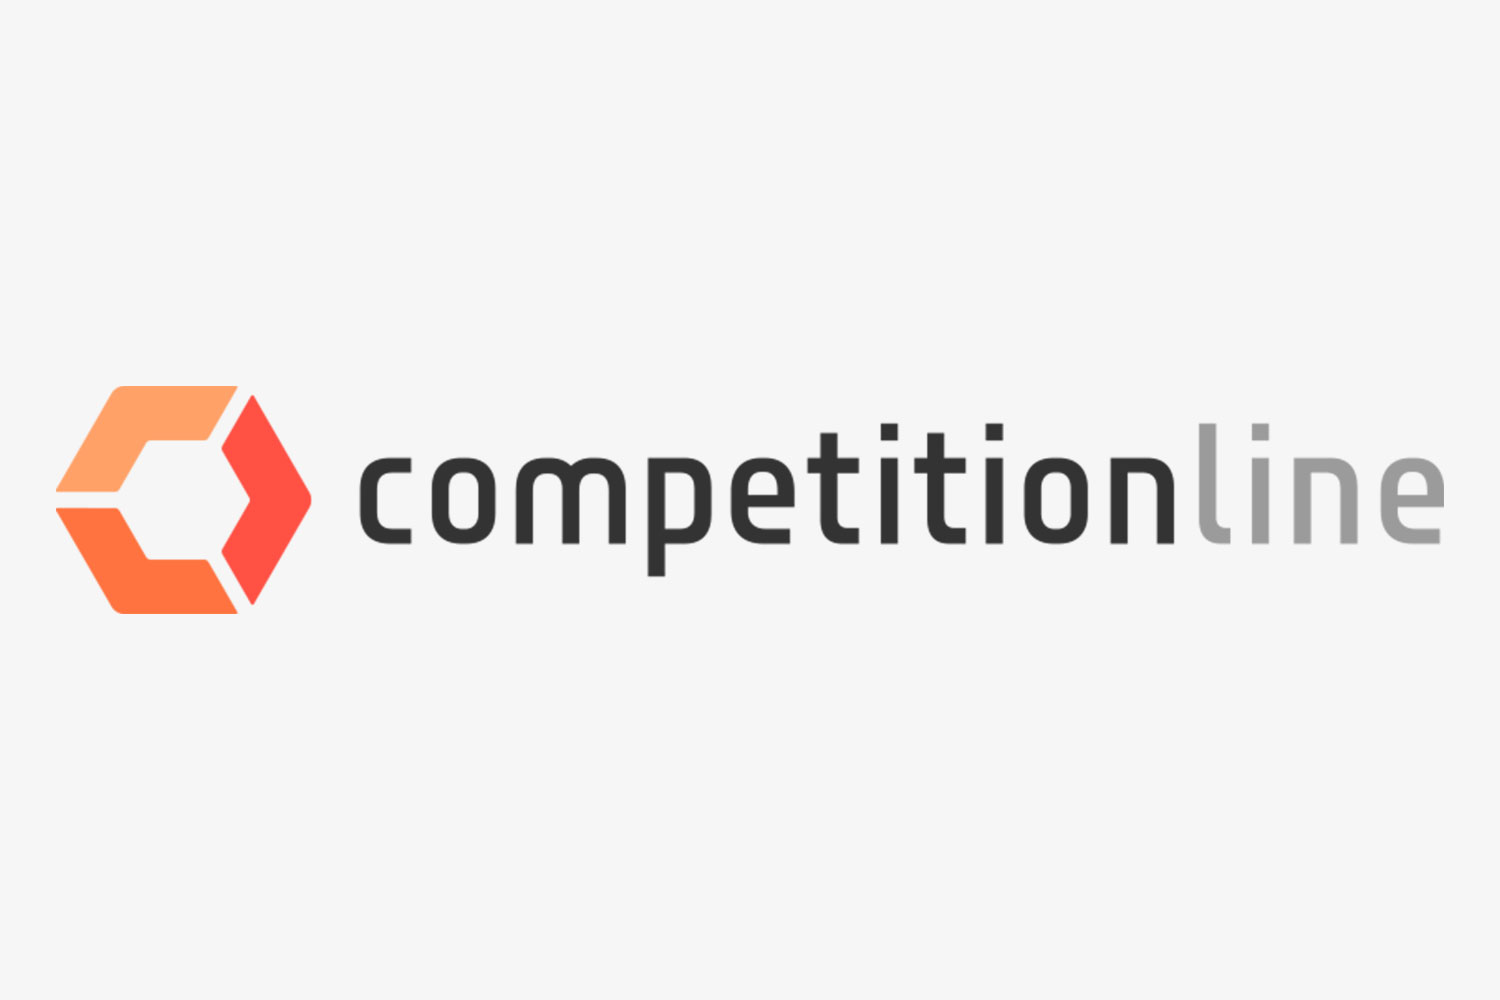 competitionline